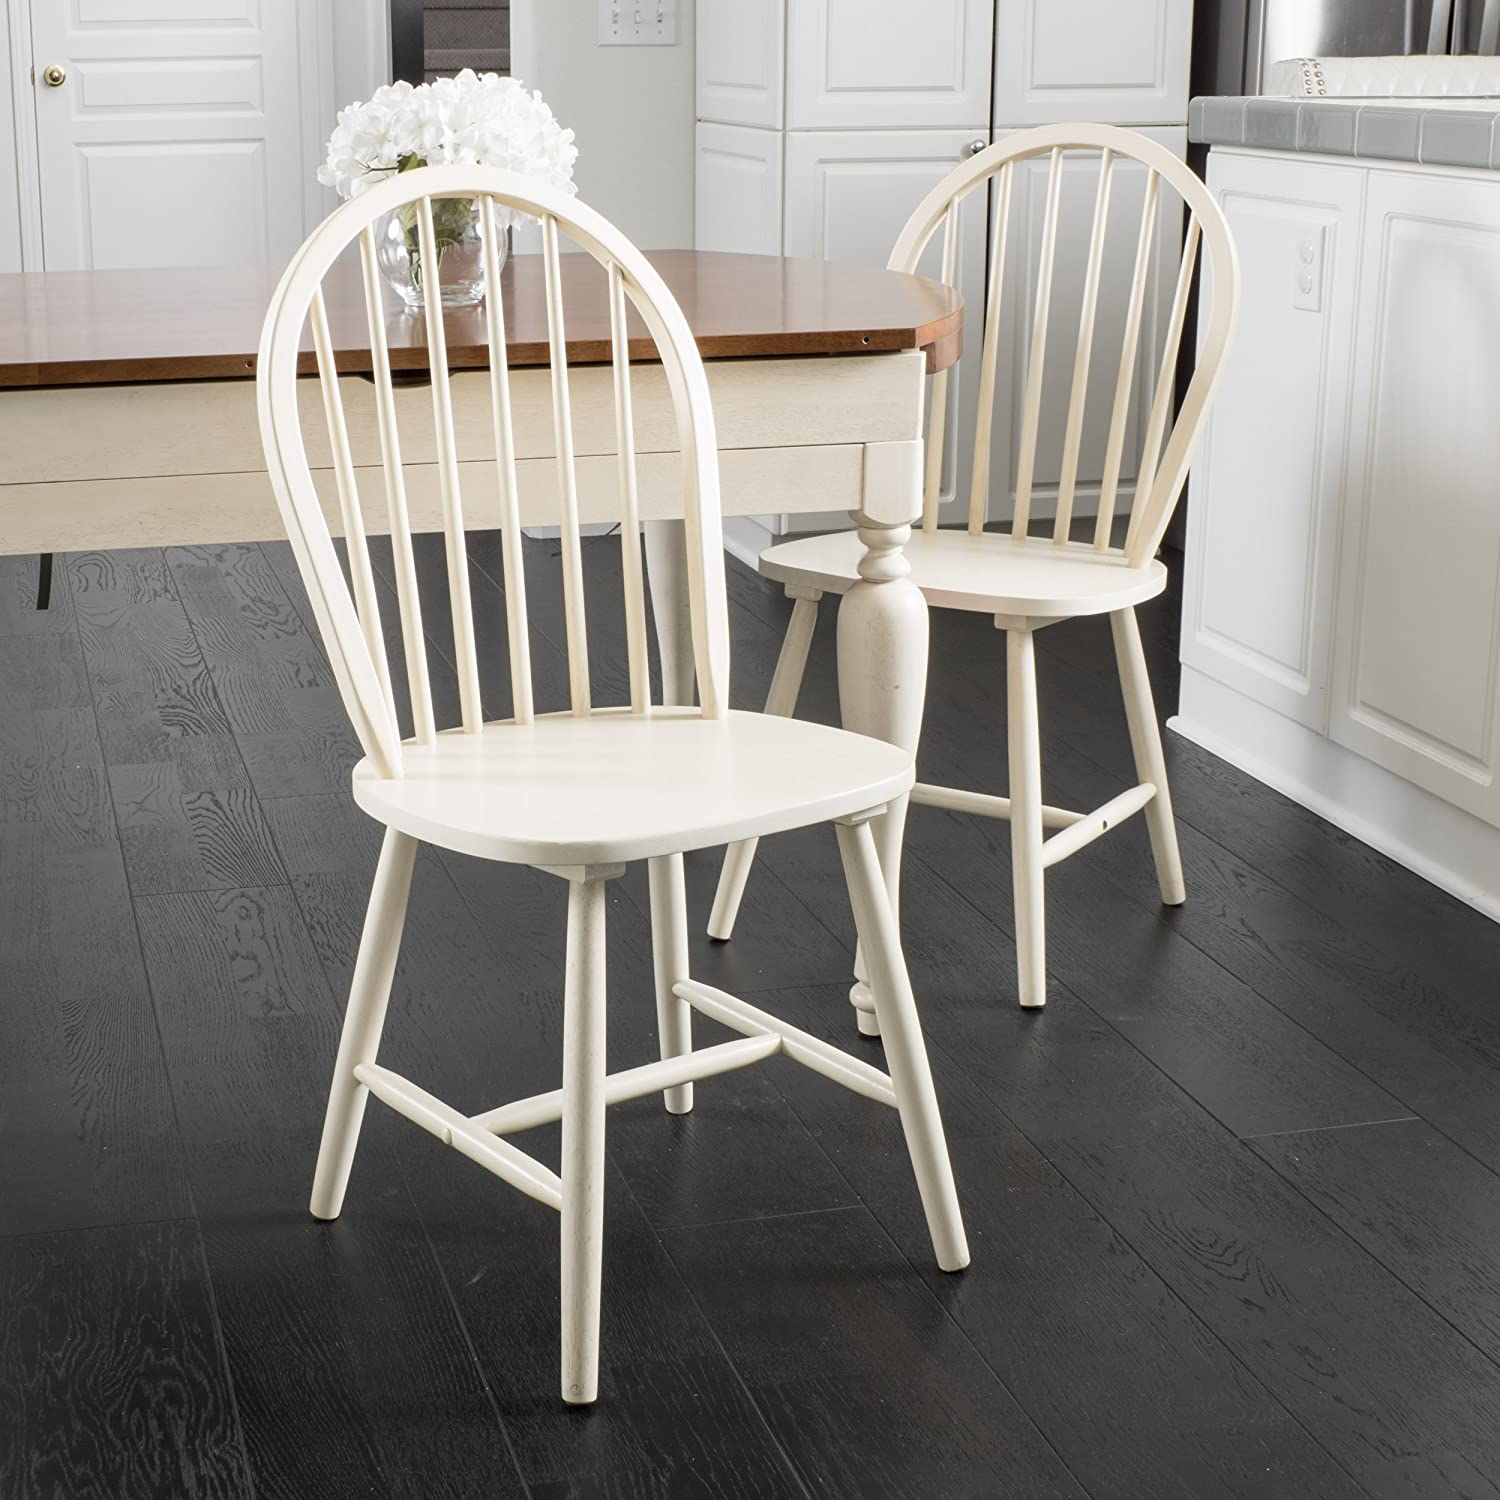 Christopher Knight Home 296031 Countryside Dining Chair, Antique White